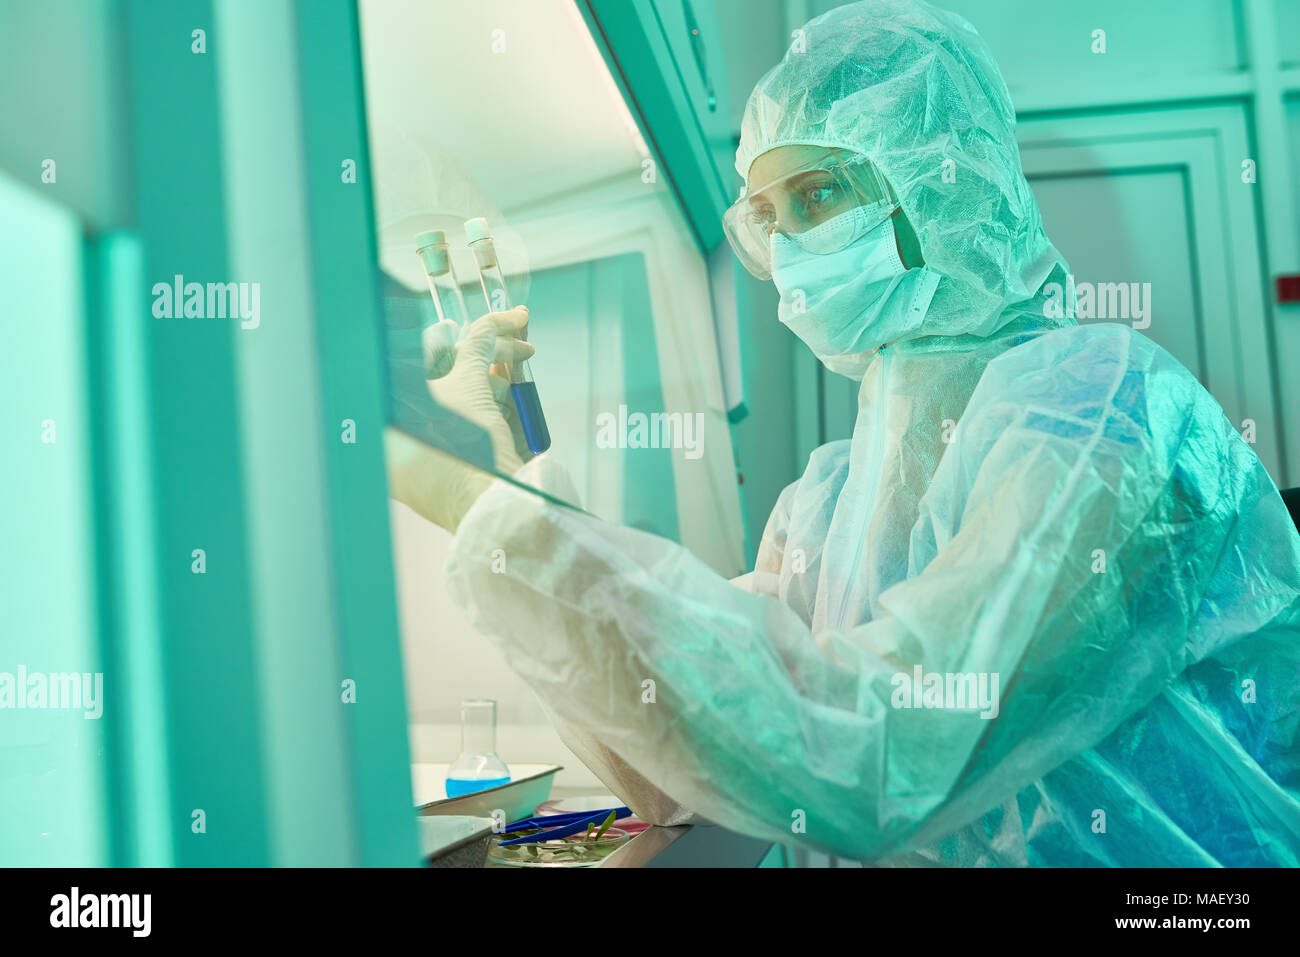 Laboratorio speciale posto per rischioso esperimento scientifico Foto Stock